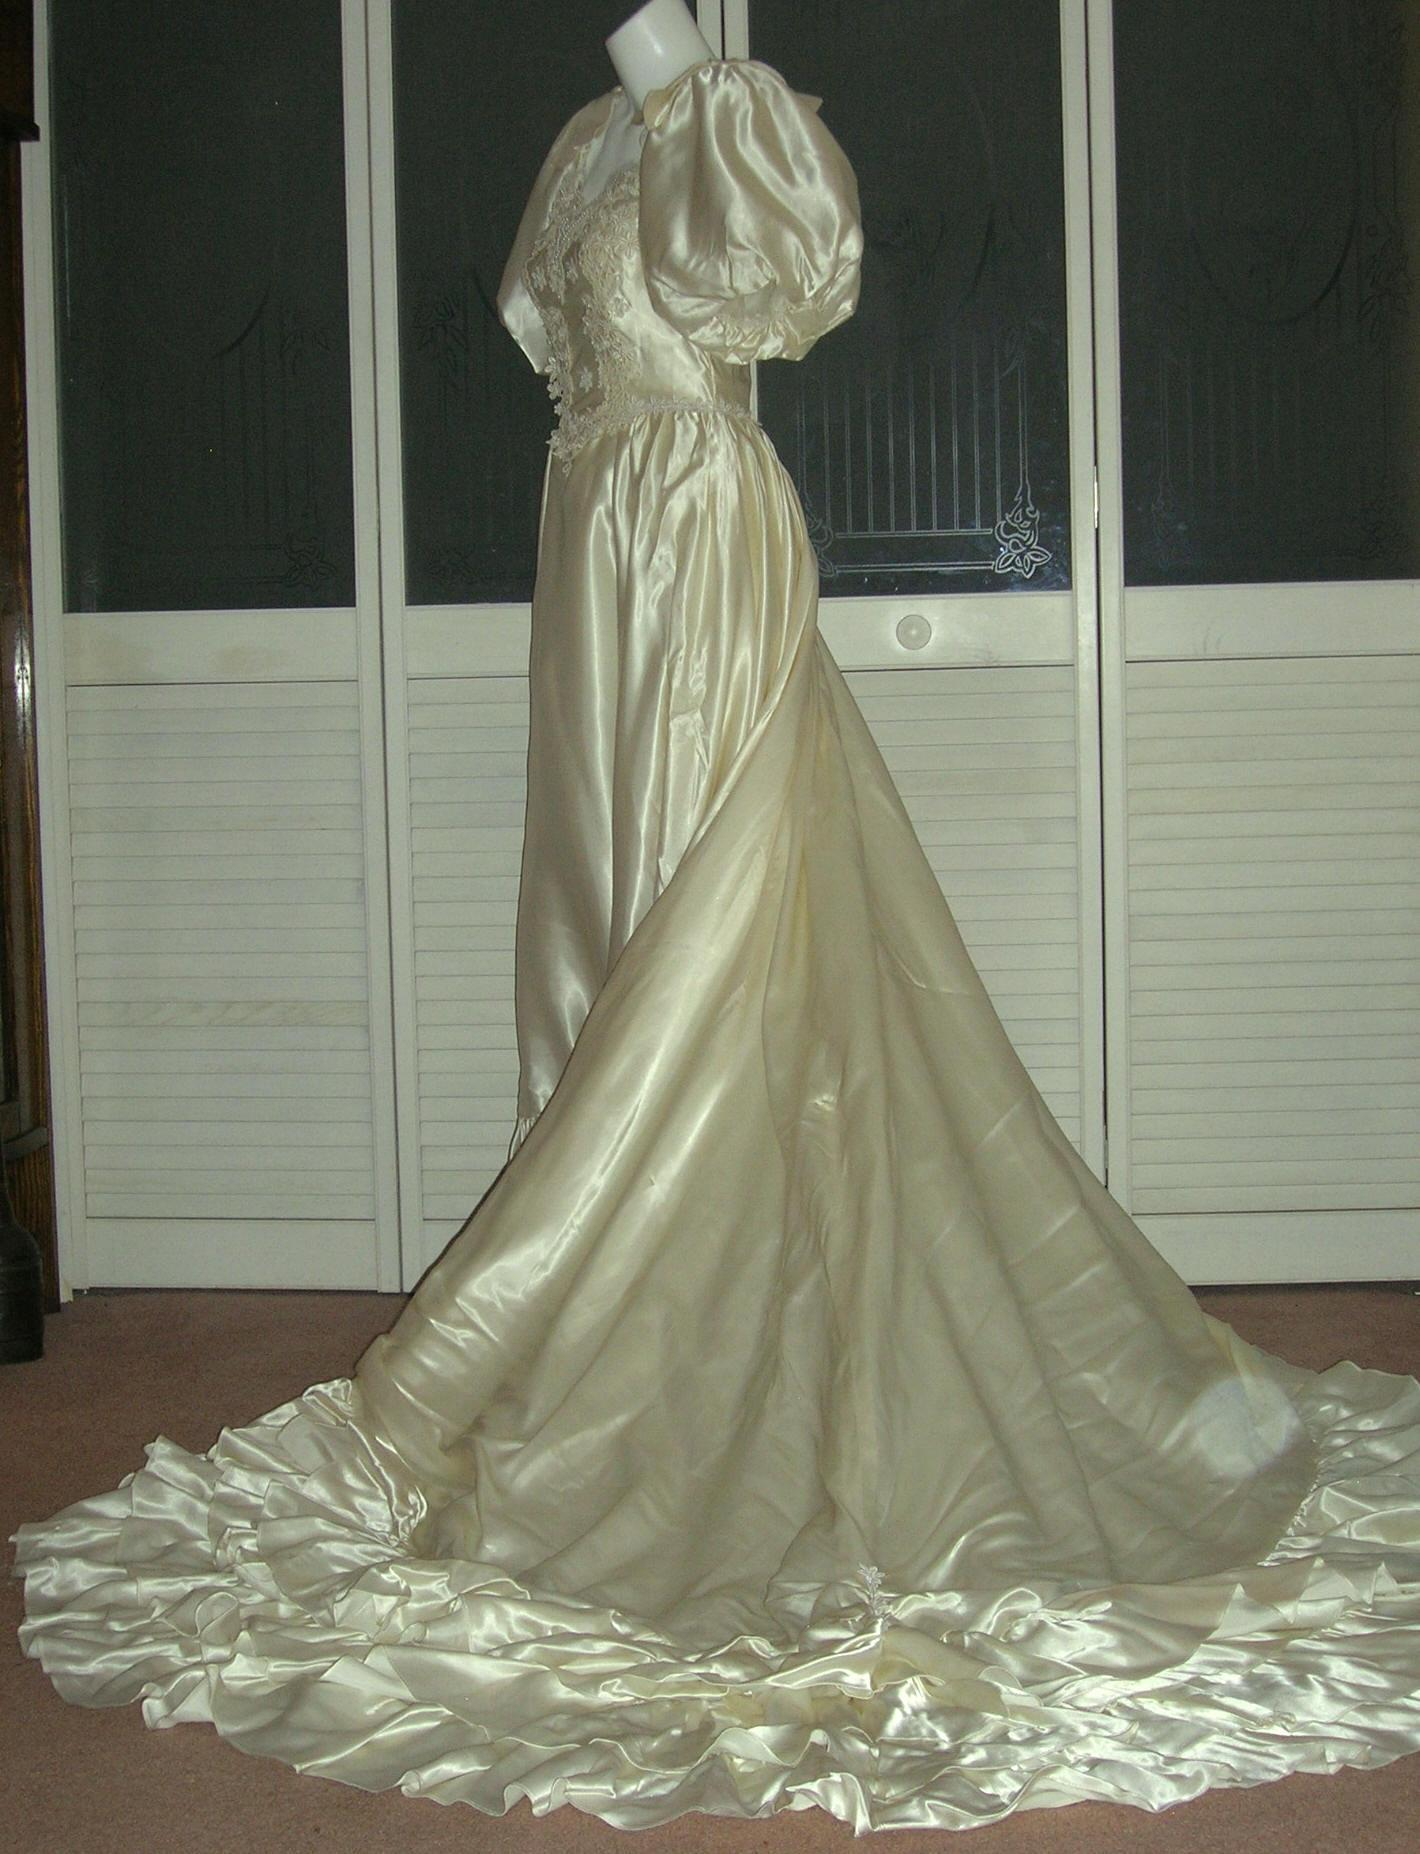 Vintage Liquid Satin Cinderella Bridal Gown Wedding Dress. Cheap Casual Wedding Dresses Under 100. Elegant Wedding Dresses Under 1000. Wedding Dresses With Straps A Line. Plus Size Wedding Dresses Johannesburg. Affordable Informal Wedding Dresses. Vintage Wedding Dresses Sf Bay Area. Tea Length Wedding Dress Buy. Ivory Wedding Dress Tux